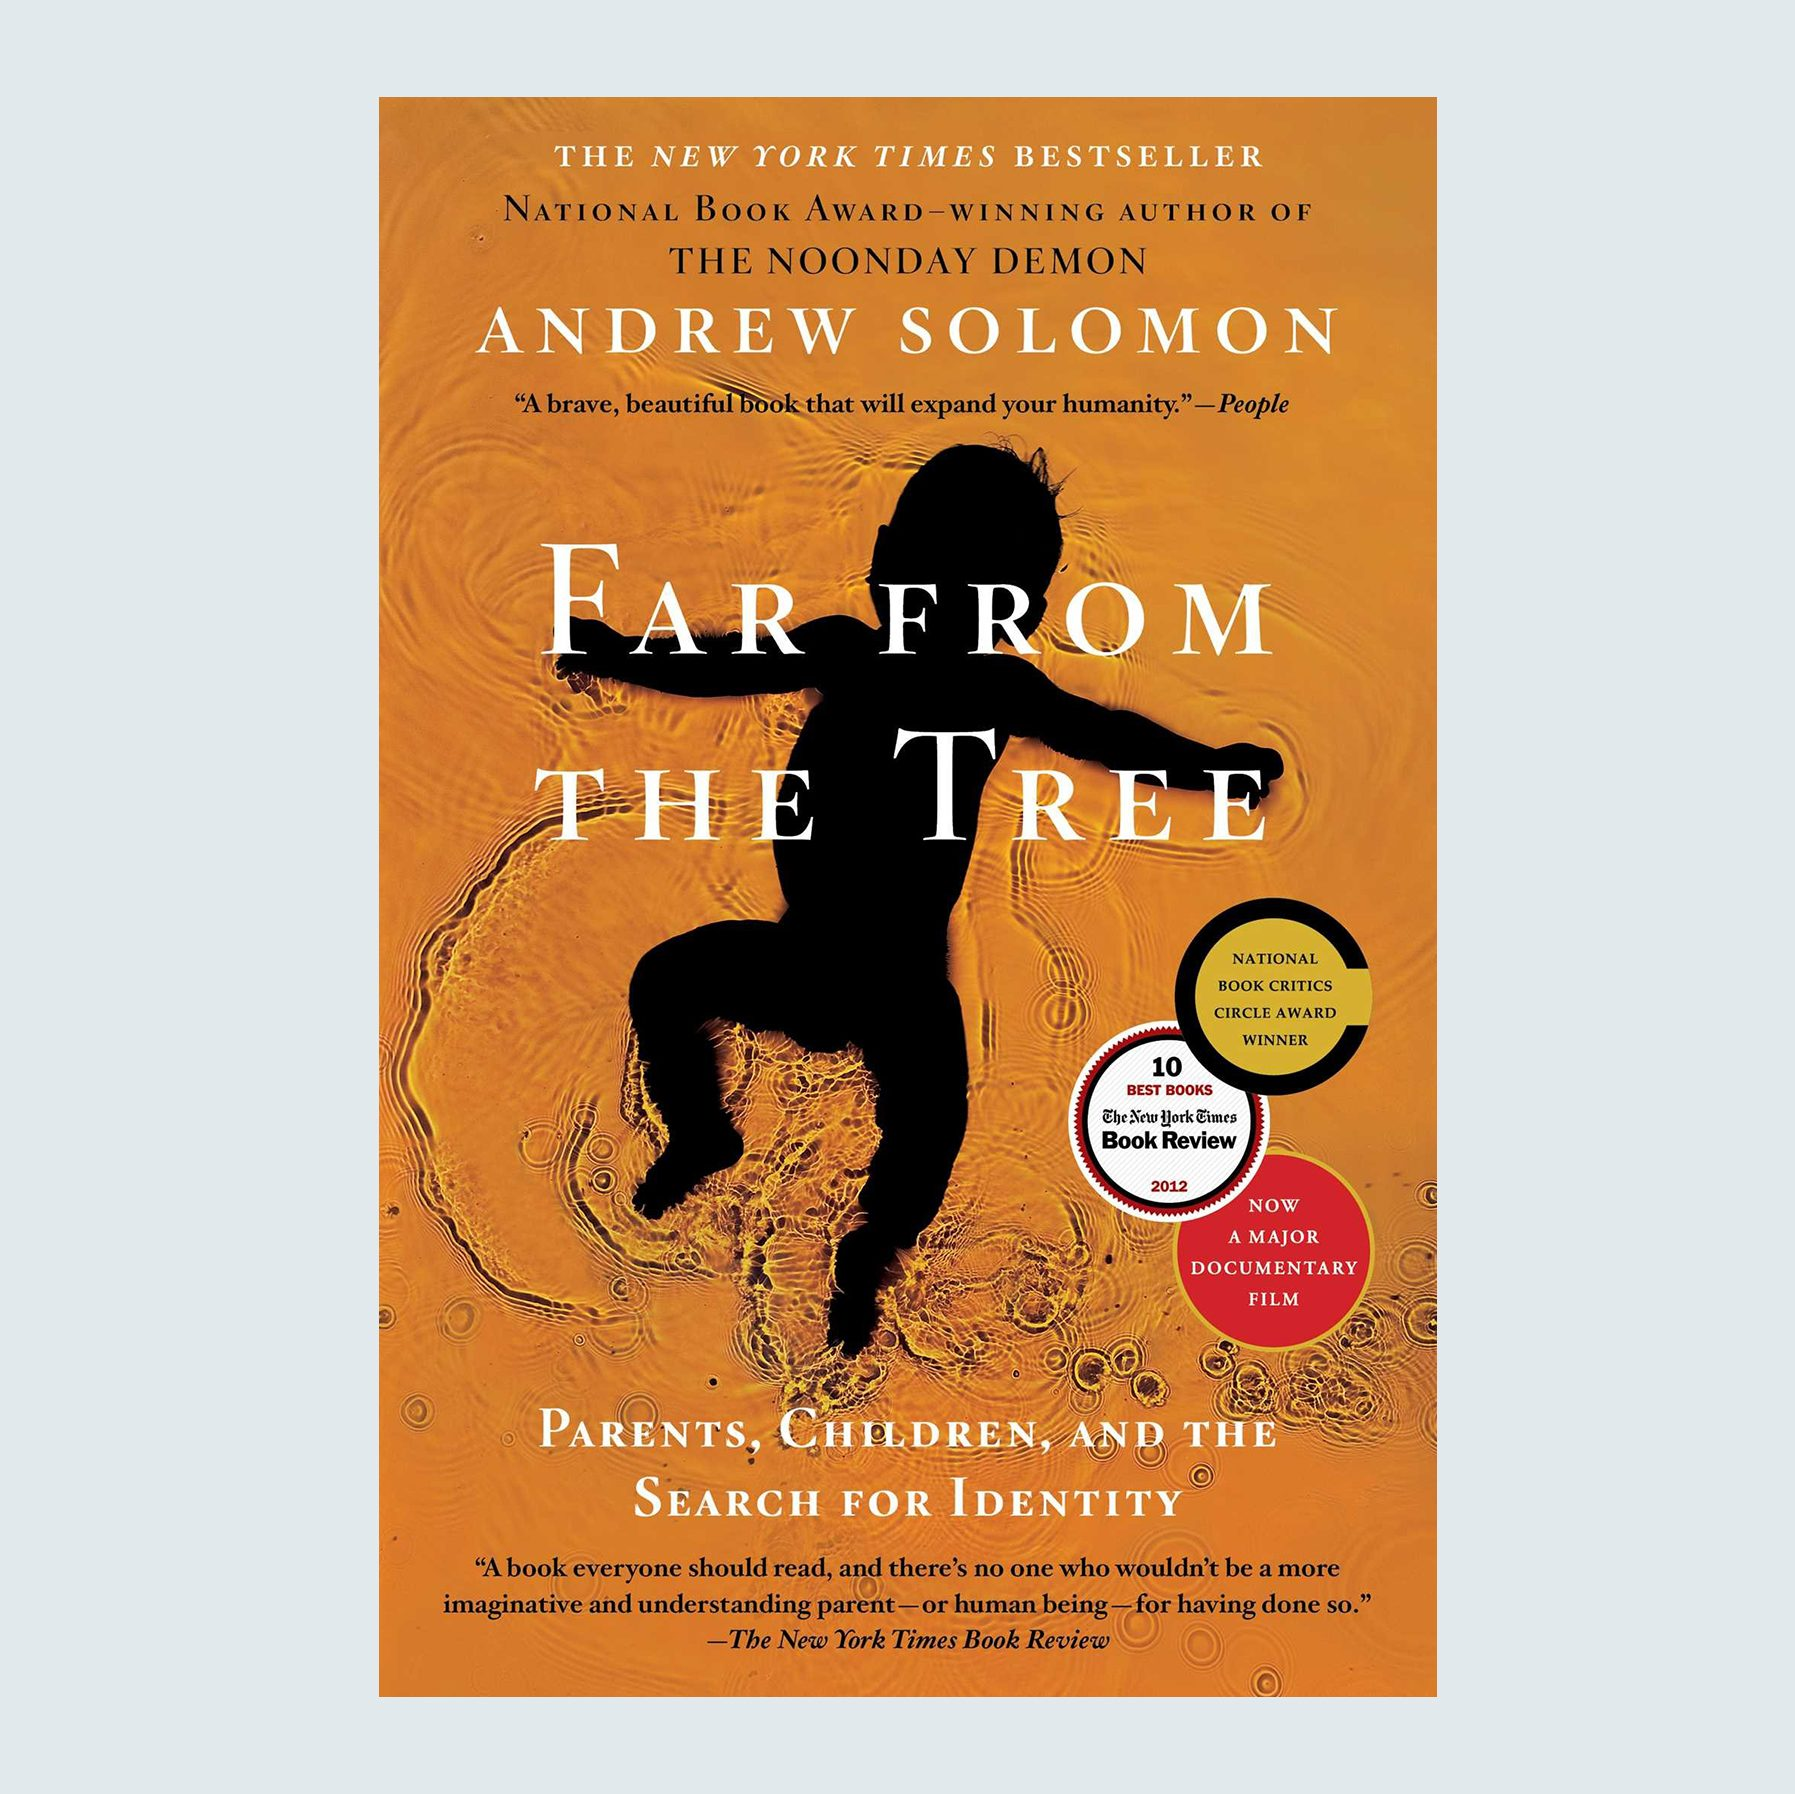 Far from the Tree: Parents, Children, and the Search for Identity by Andrew Solomon